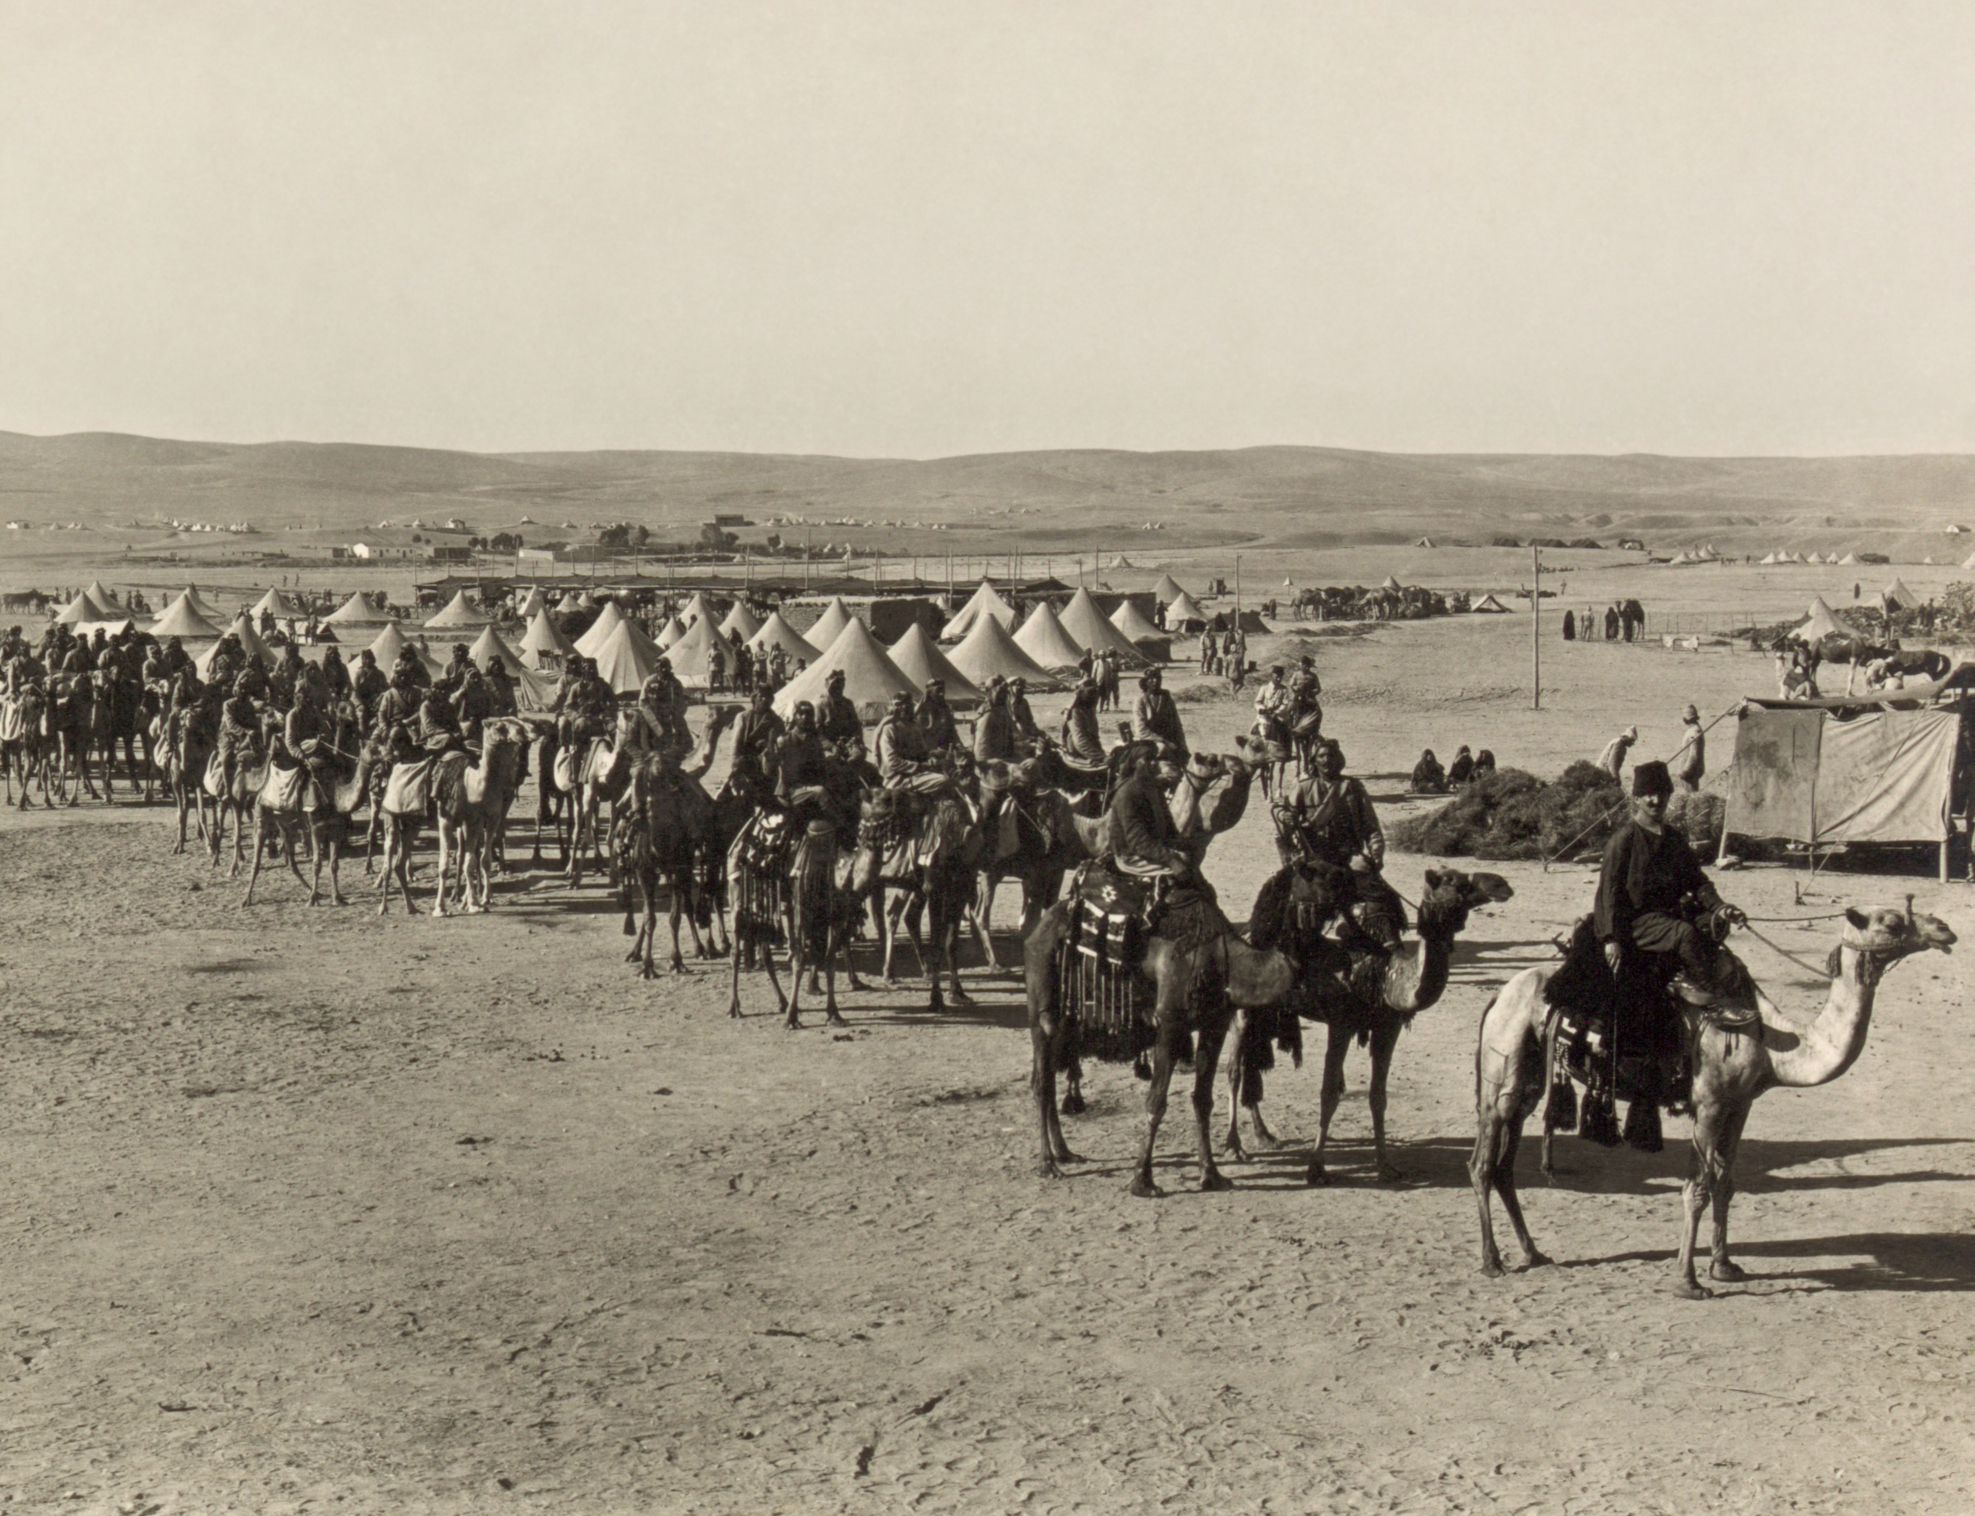 The_camel_corps_at_Beersheba-gregorywallance-thewomanwhofoughtanempire.jpg